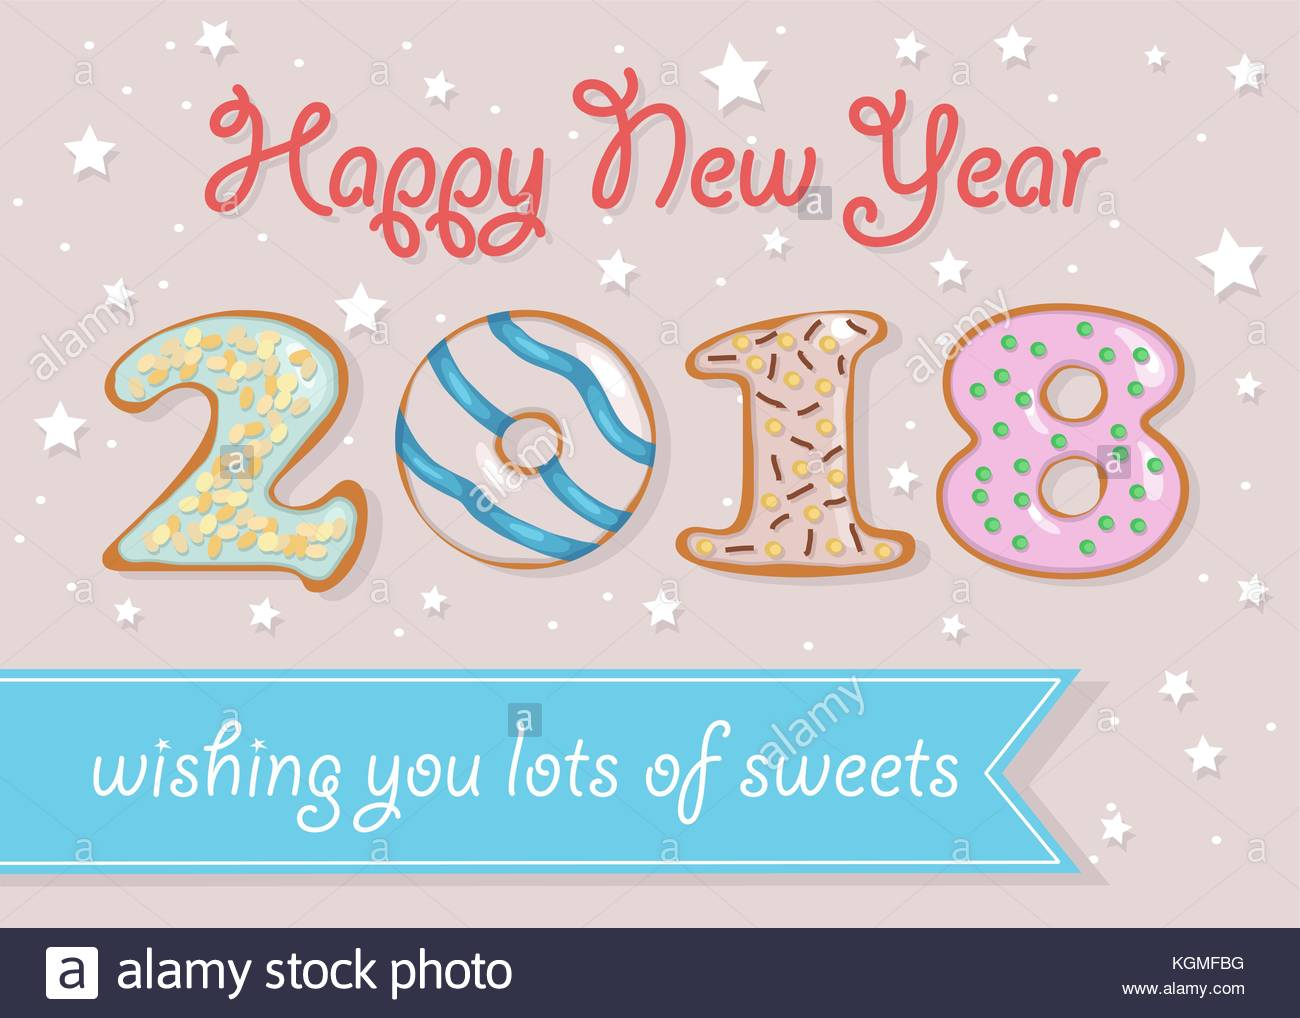 happy new year 2018 numerals are as sweet white chocolate donuts blue banner with text wishing you lots of sweets pink background with stars and sp